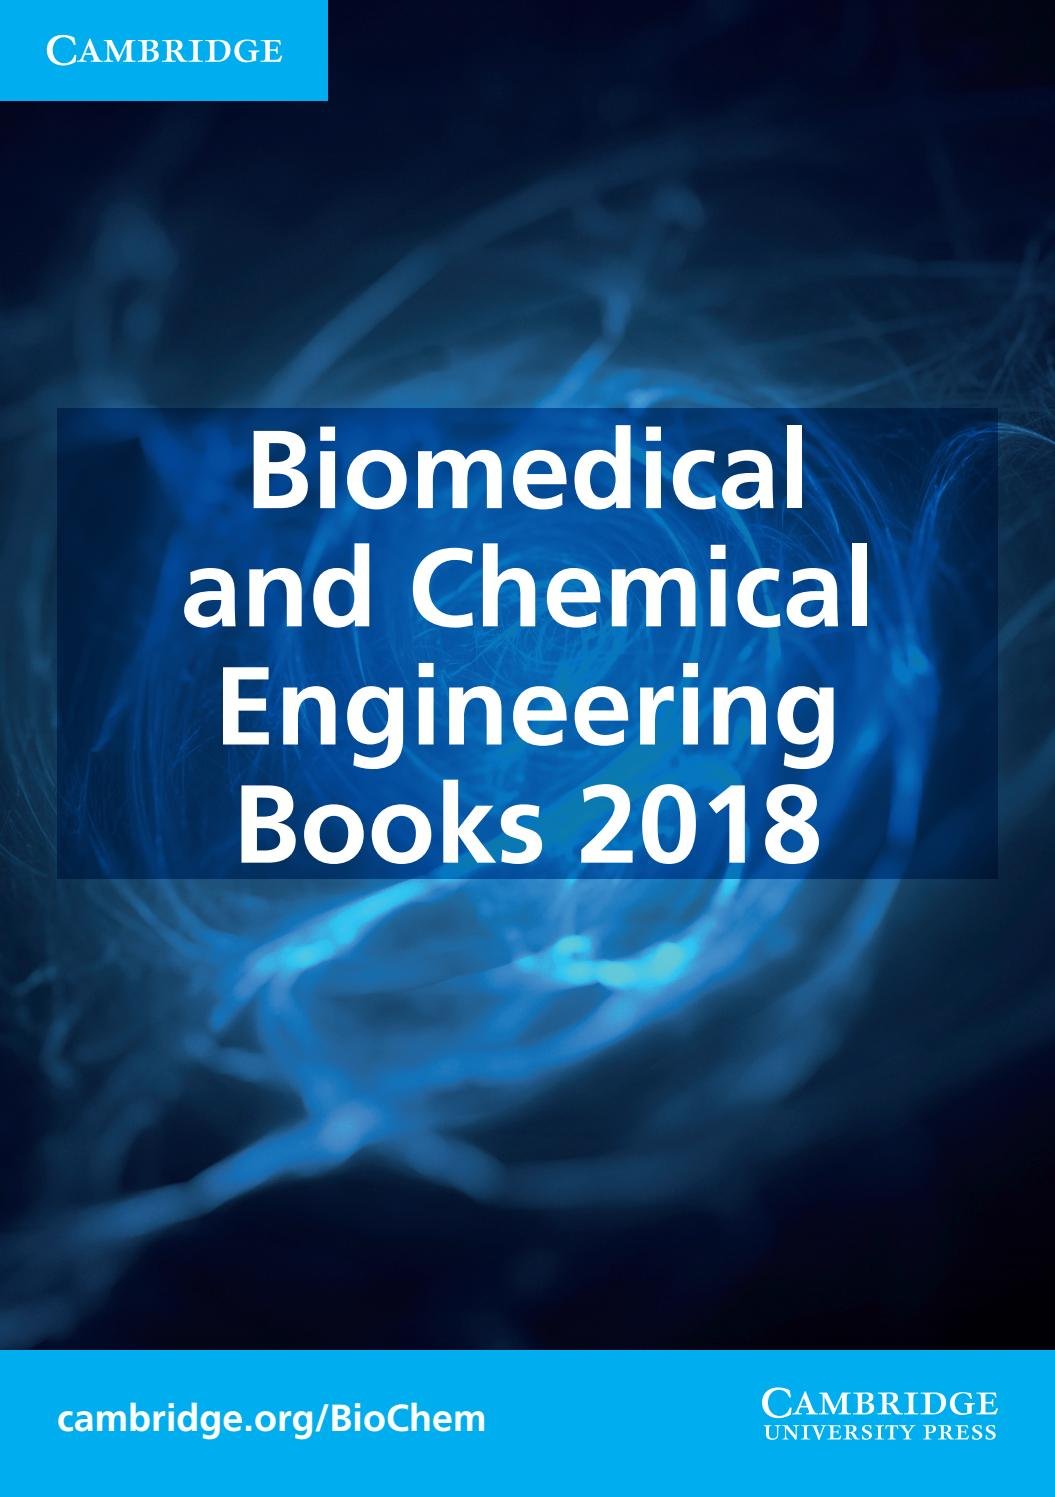 Biomedical and Chemical Engineering 2018 by Cambridge University Press -  issuu